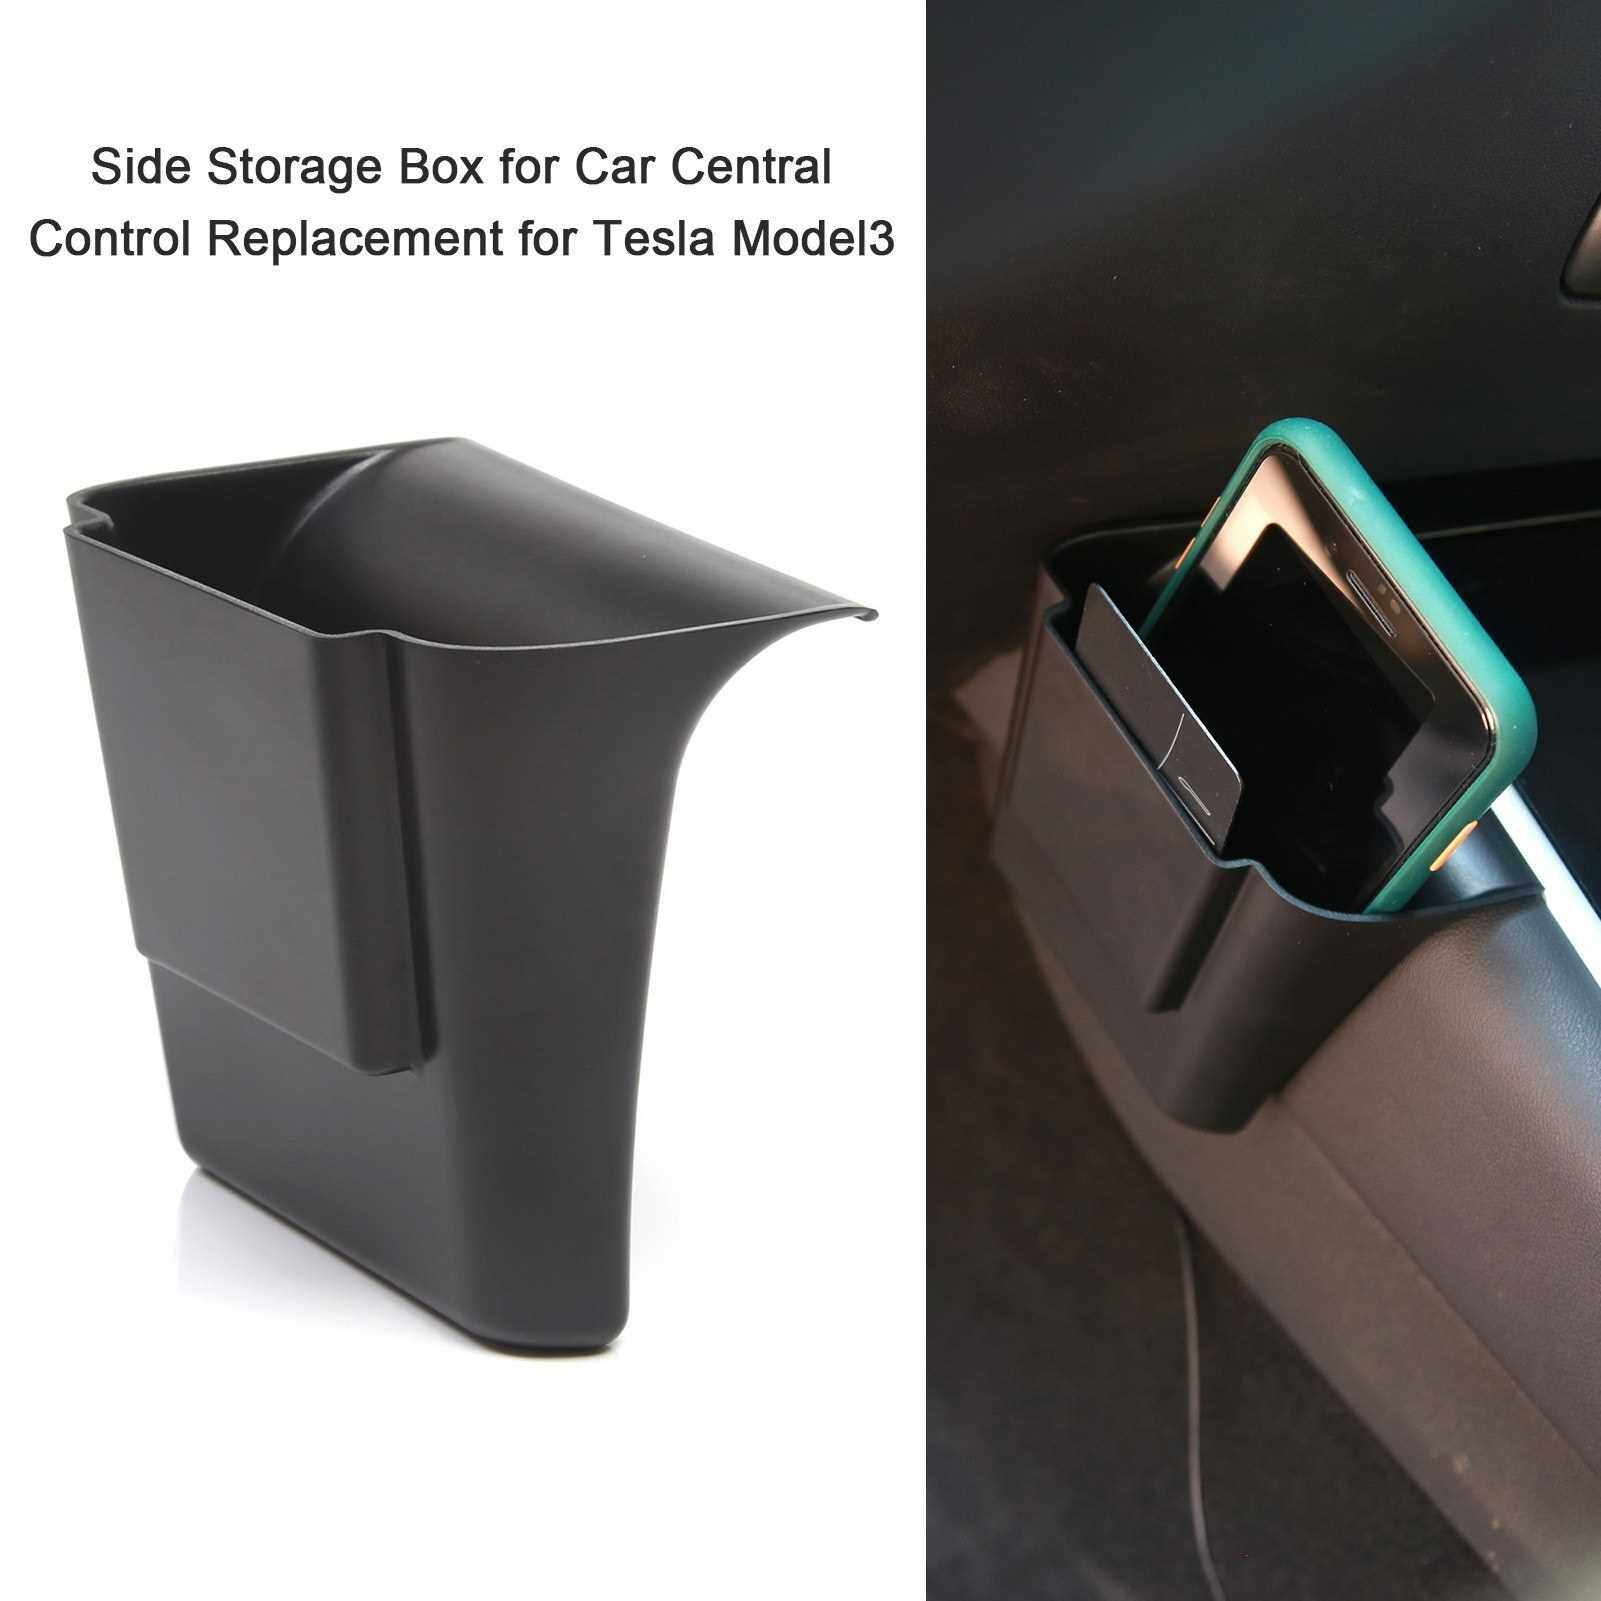 People's Choice Side Storage Box for Car Central Control Side Interior Modification Accessories Replacement for Tesla Model3 (Standard)